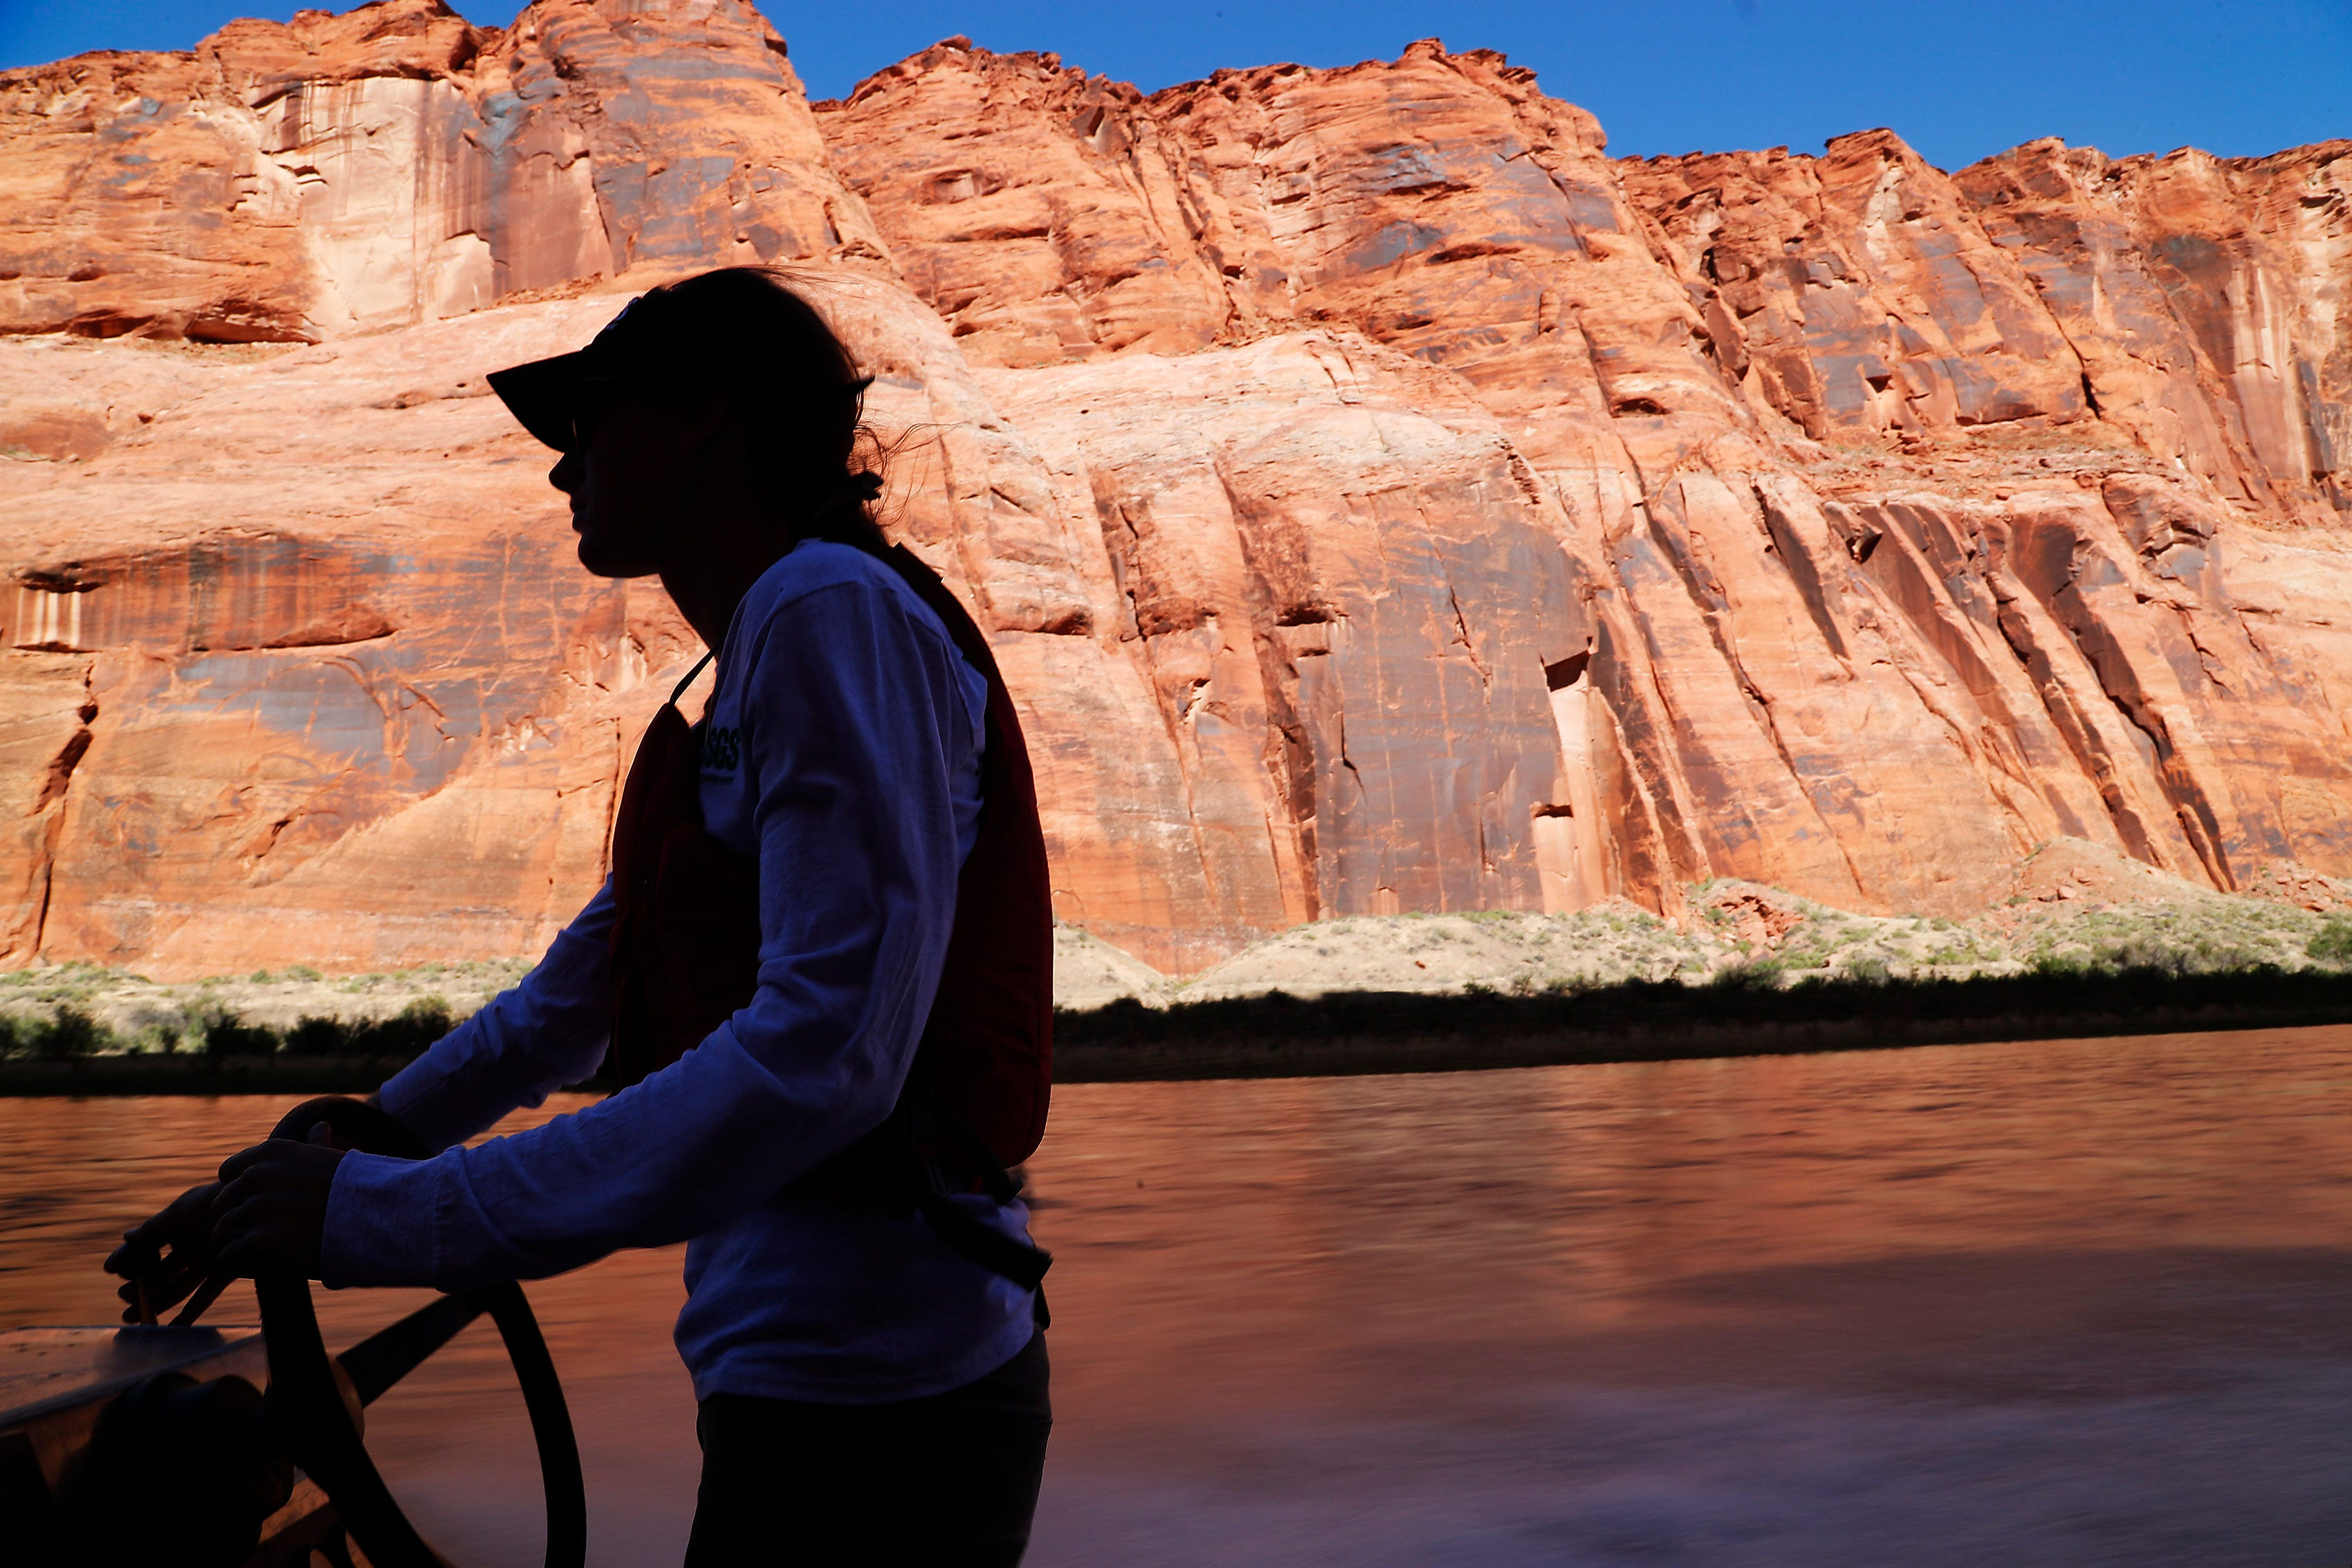 U.S. Geological Survey biologist Megan Daubert navigates the Colorado River while collecting bug traps near Marble Canyon. Experts say the river's insect population offers less nourishment to go around than a healthy environment would provide.